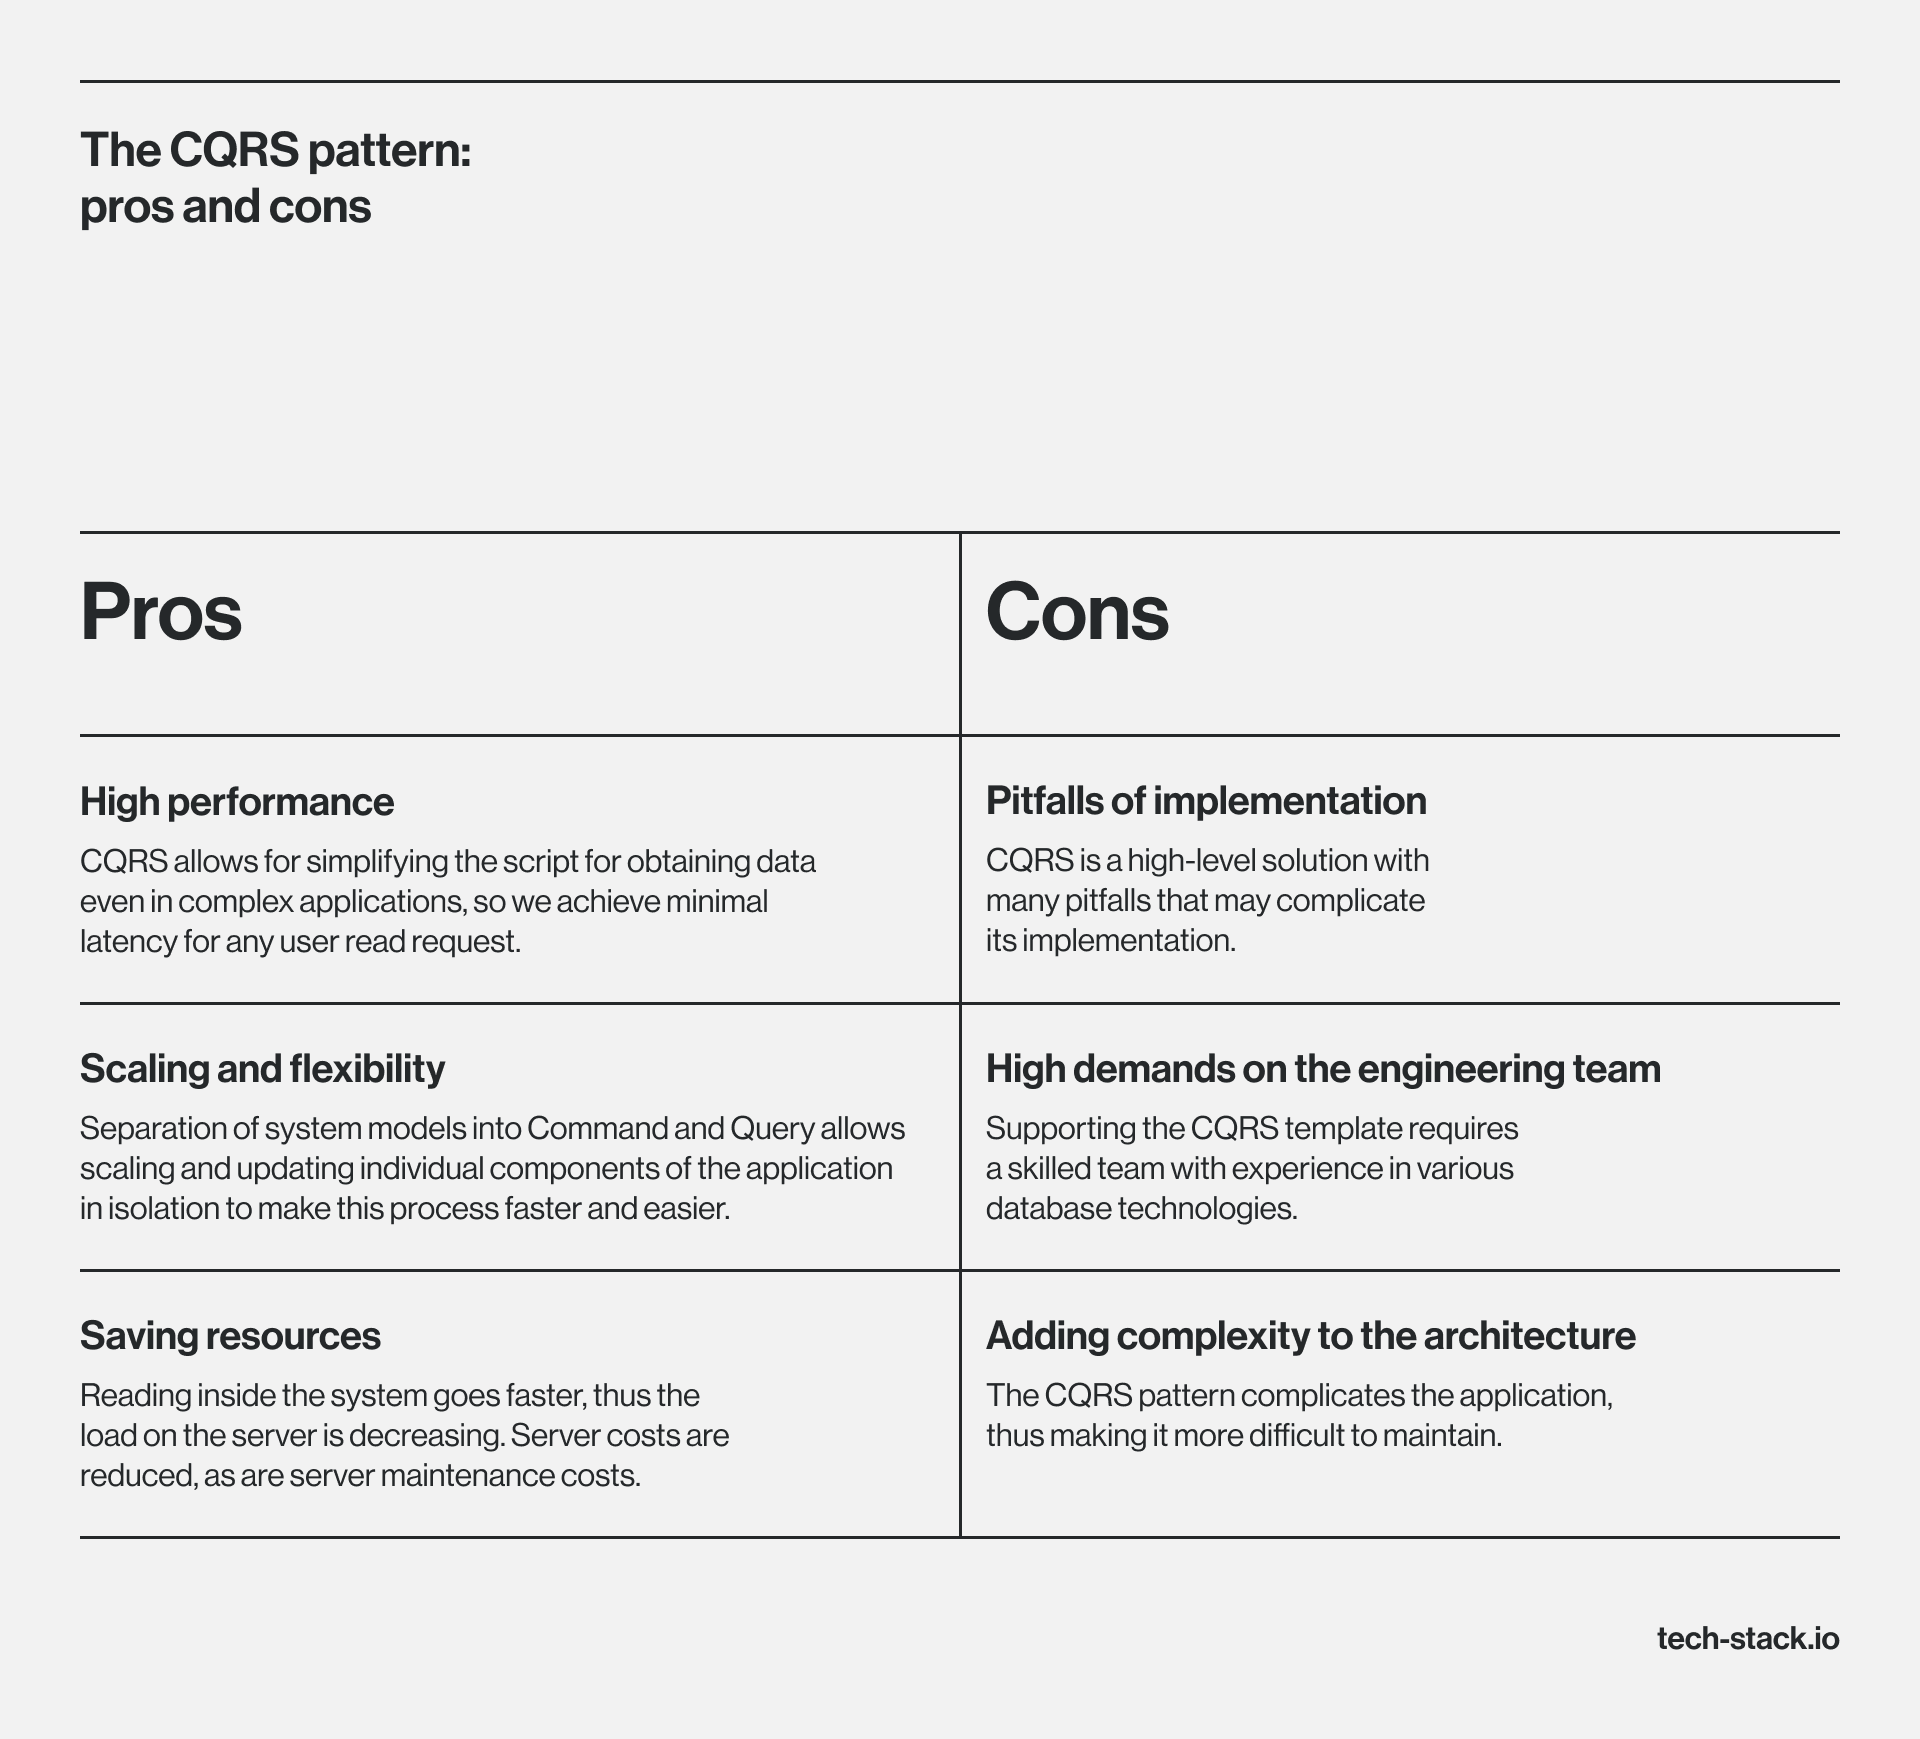 Pros and cons of CQRS